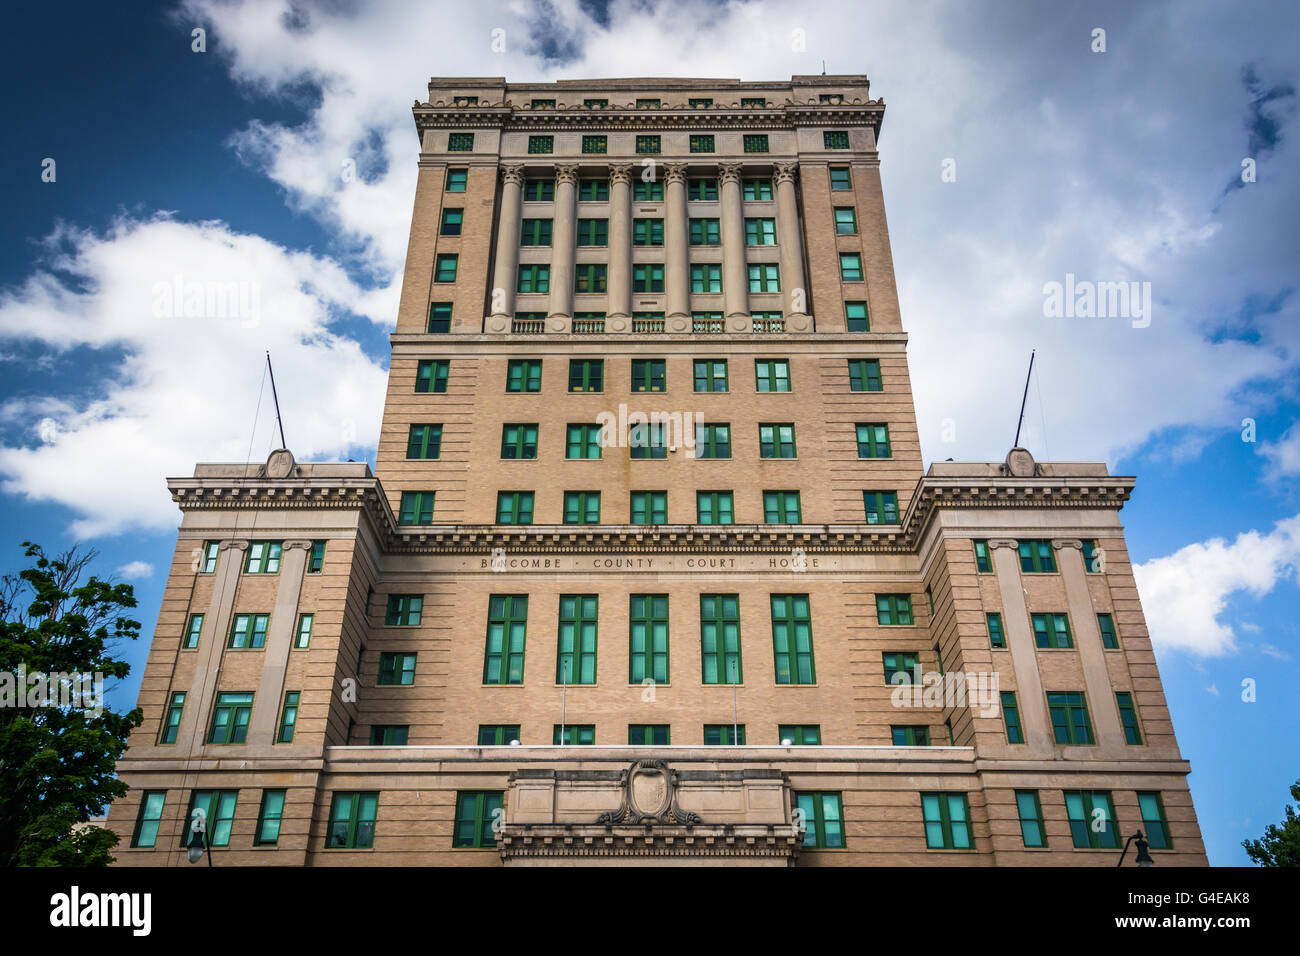 Buncombe County Courthouse in Asheville, North Carolina. - Stock Image